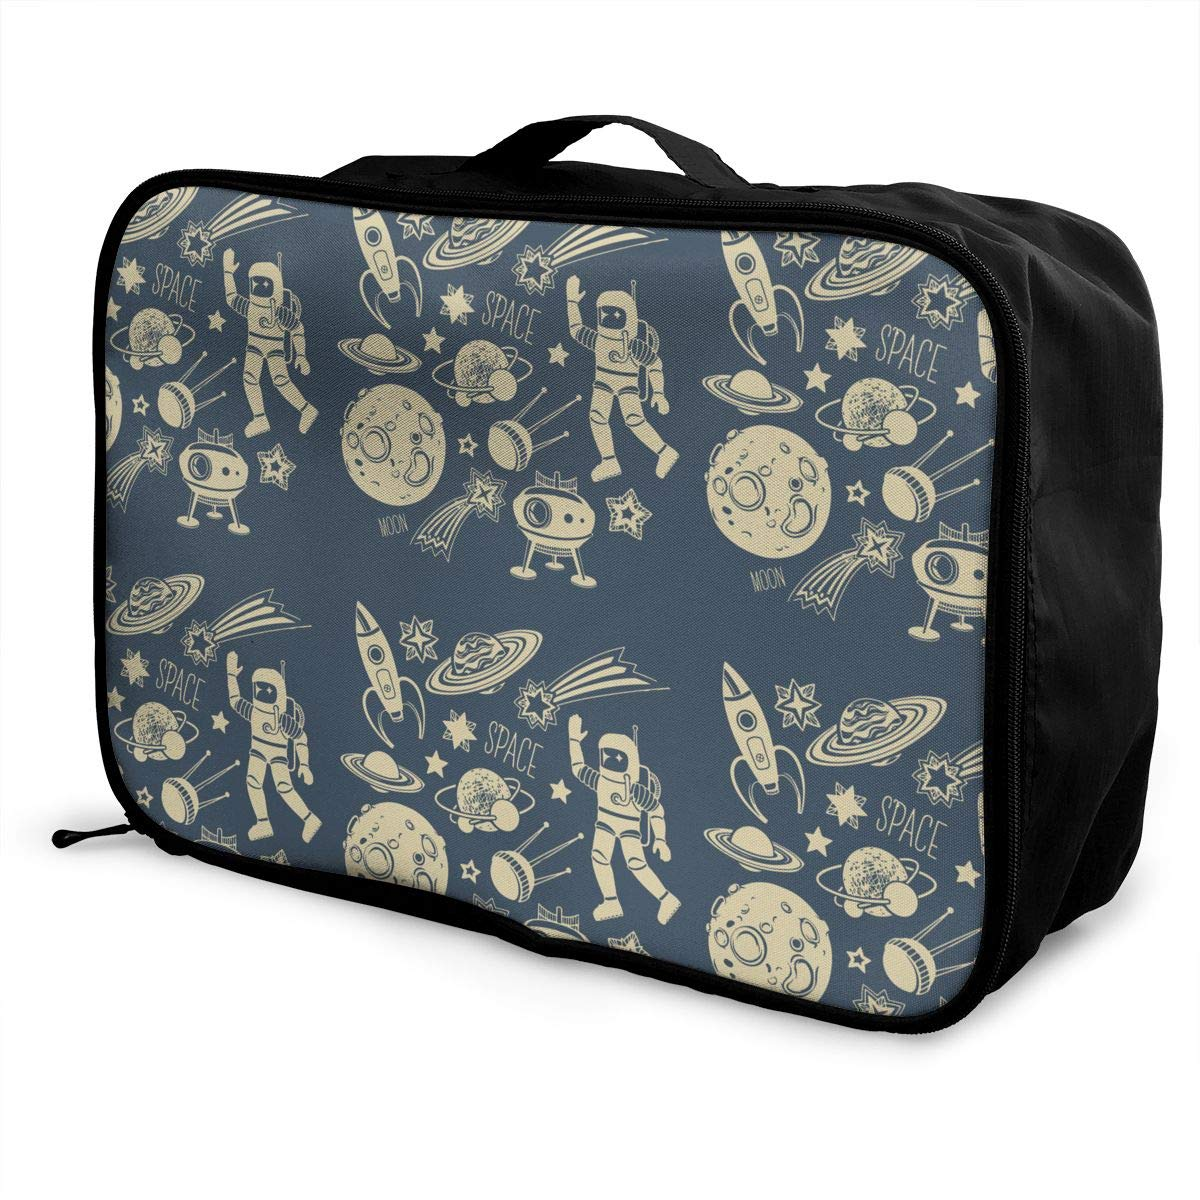 Space Astronaut Satellite Rocket Travel Pouch Carry-on Duffle Bag Lightweight Waterproof Portable Luggage Bag Attach To Suitcase